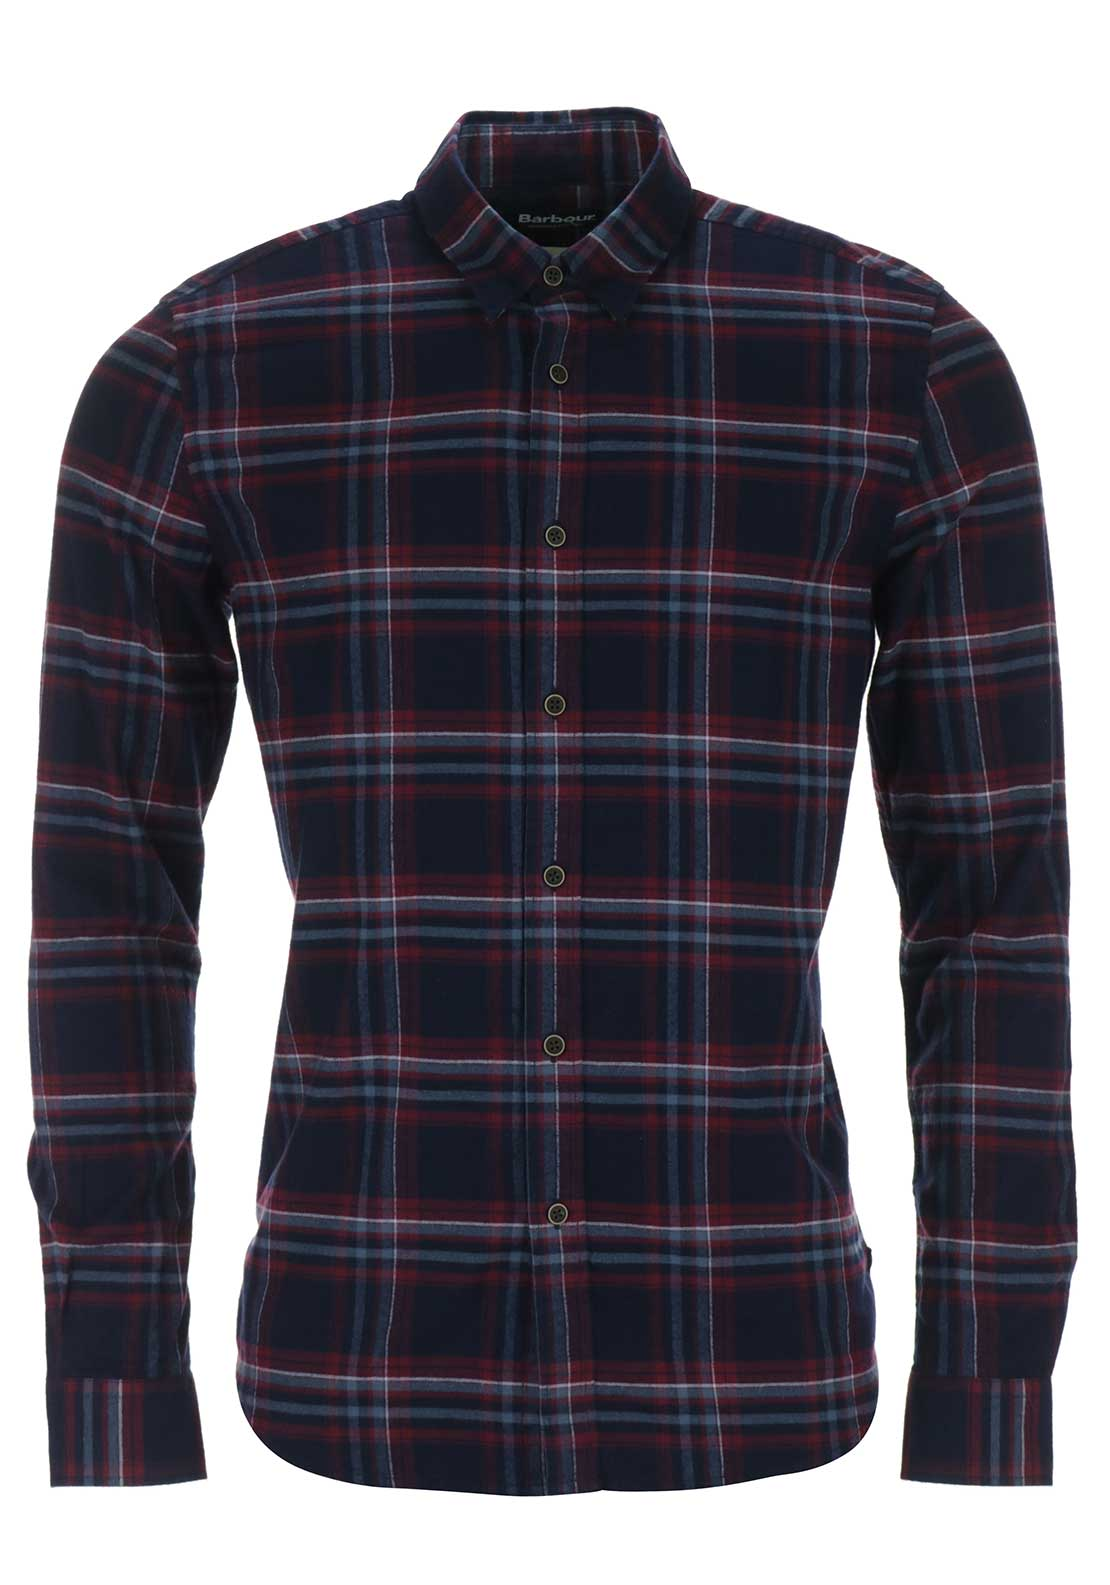 Barbour International Mens Lane Checked Shirt, Red Multi